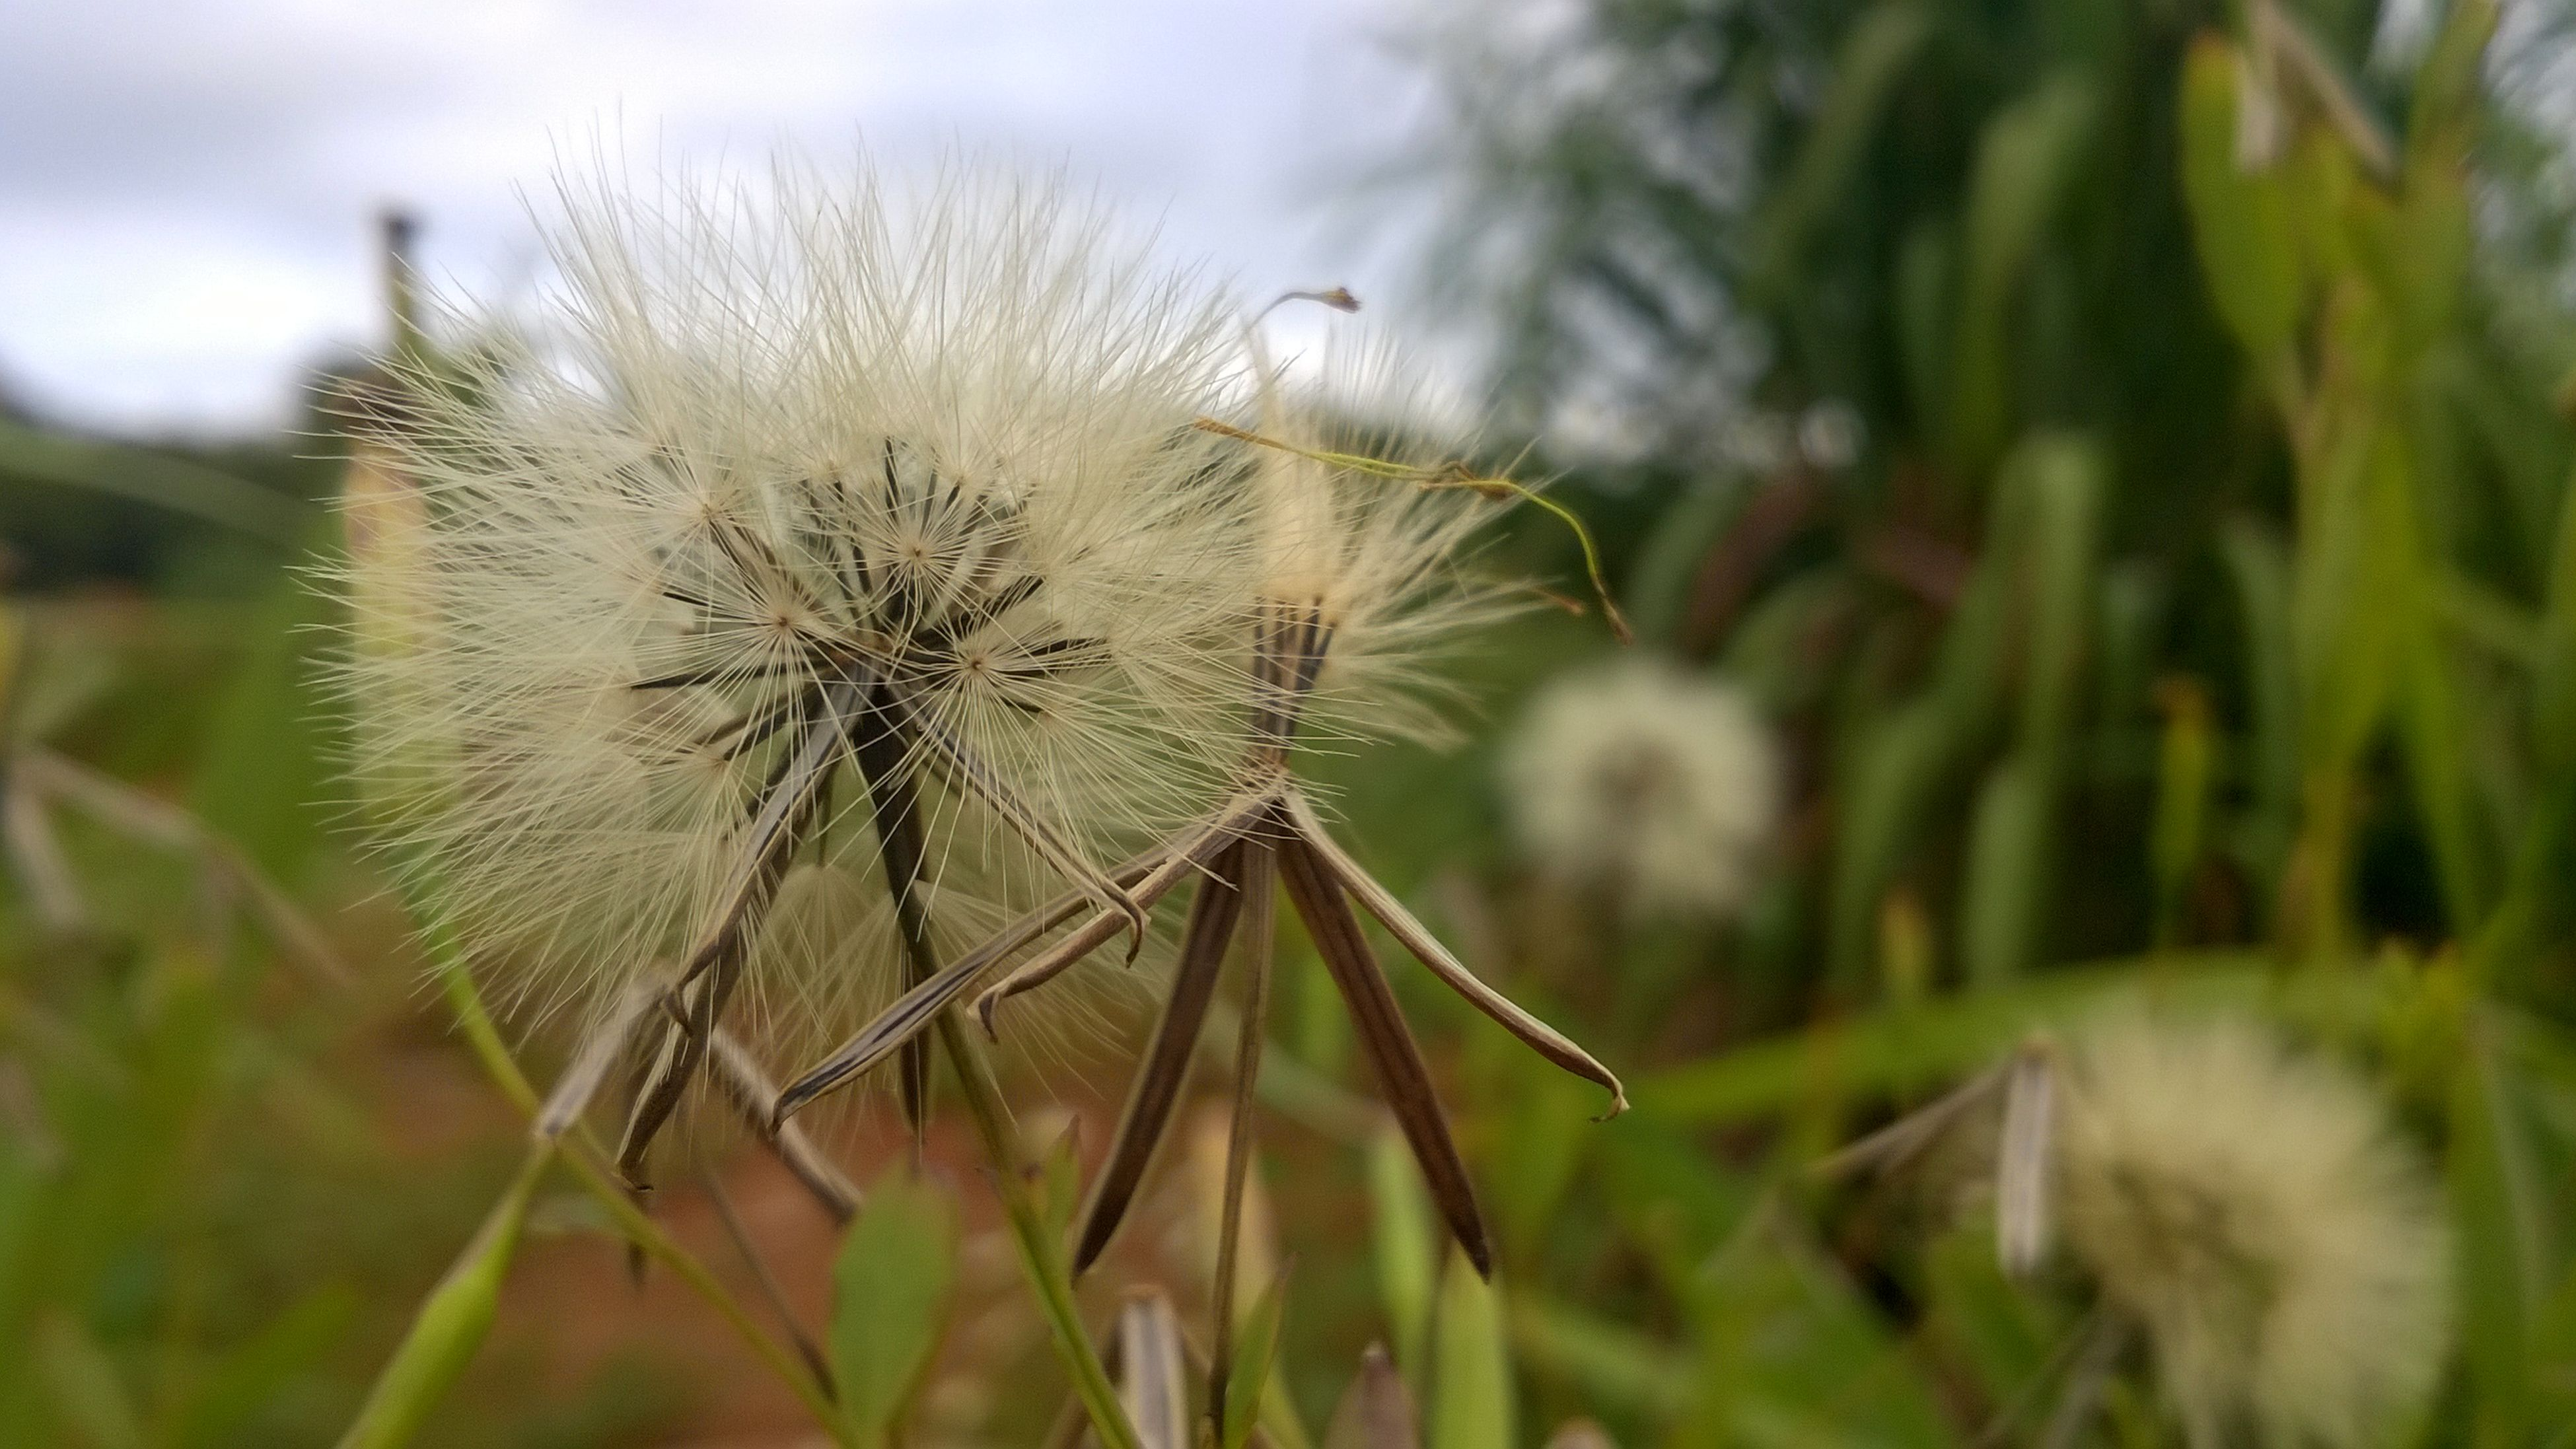 dandelion, flower, fragility, growth, focus on foreground, close-up, freshness, dandelion seed, flower head, nature, stem, beauty in nature, plant, single flower, softness, uncultivated, wildflower, selective focus, field, thistle